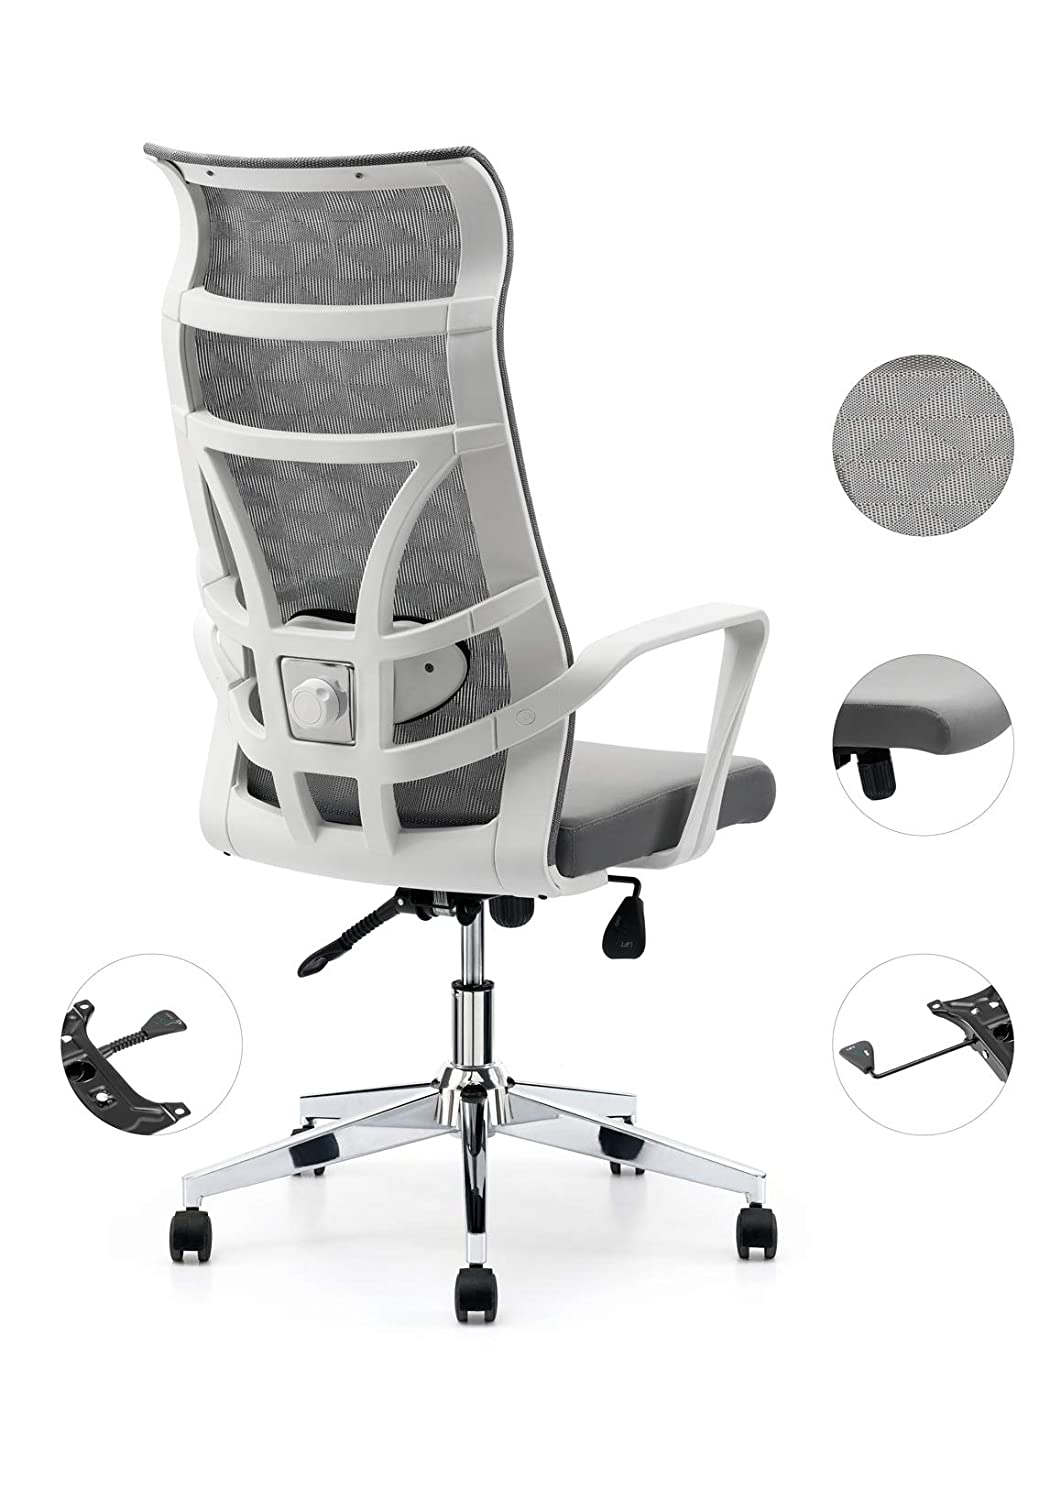 Allguest Office Chair Home Computer Chair White High Back Armrest Ergonomic Adjustable Lumbar Support Mesh Nylon AG-876FH-W